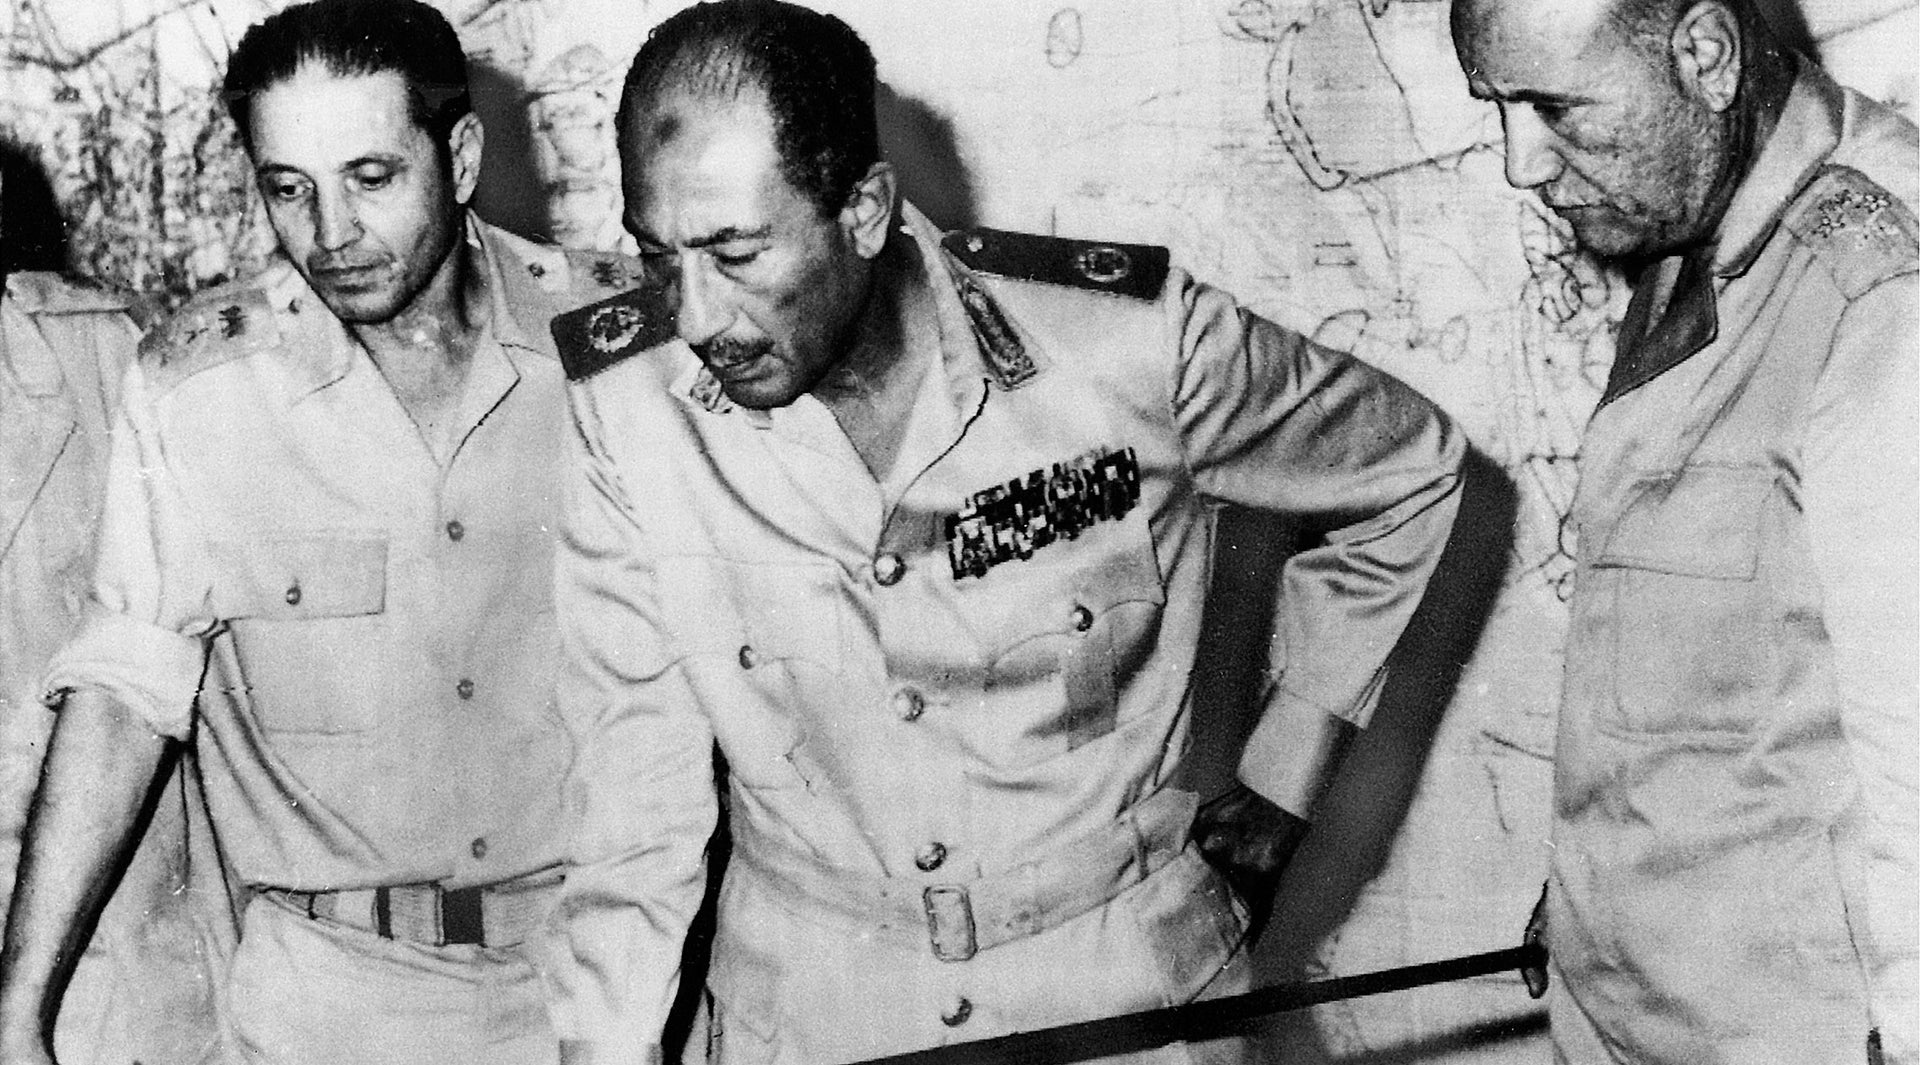 Egypt's Chief-of-Staff Saad el-Shazly (left), President Anwar Sadat  (center) and Minister of War Ismail Ali review battlefield developments in 1973.